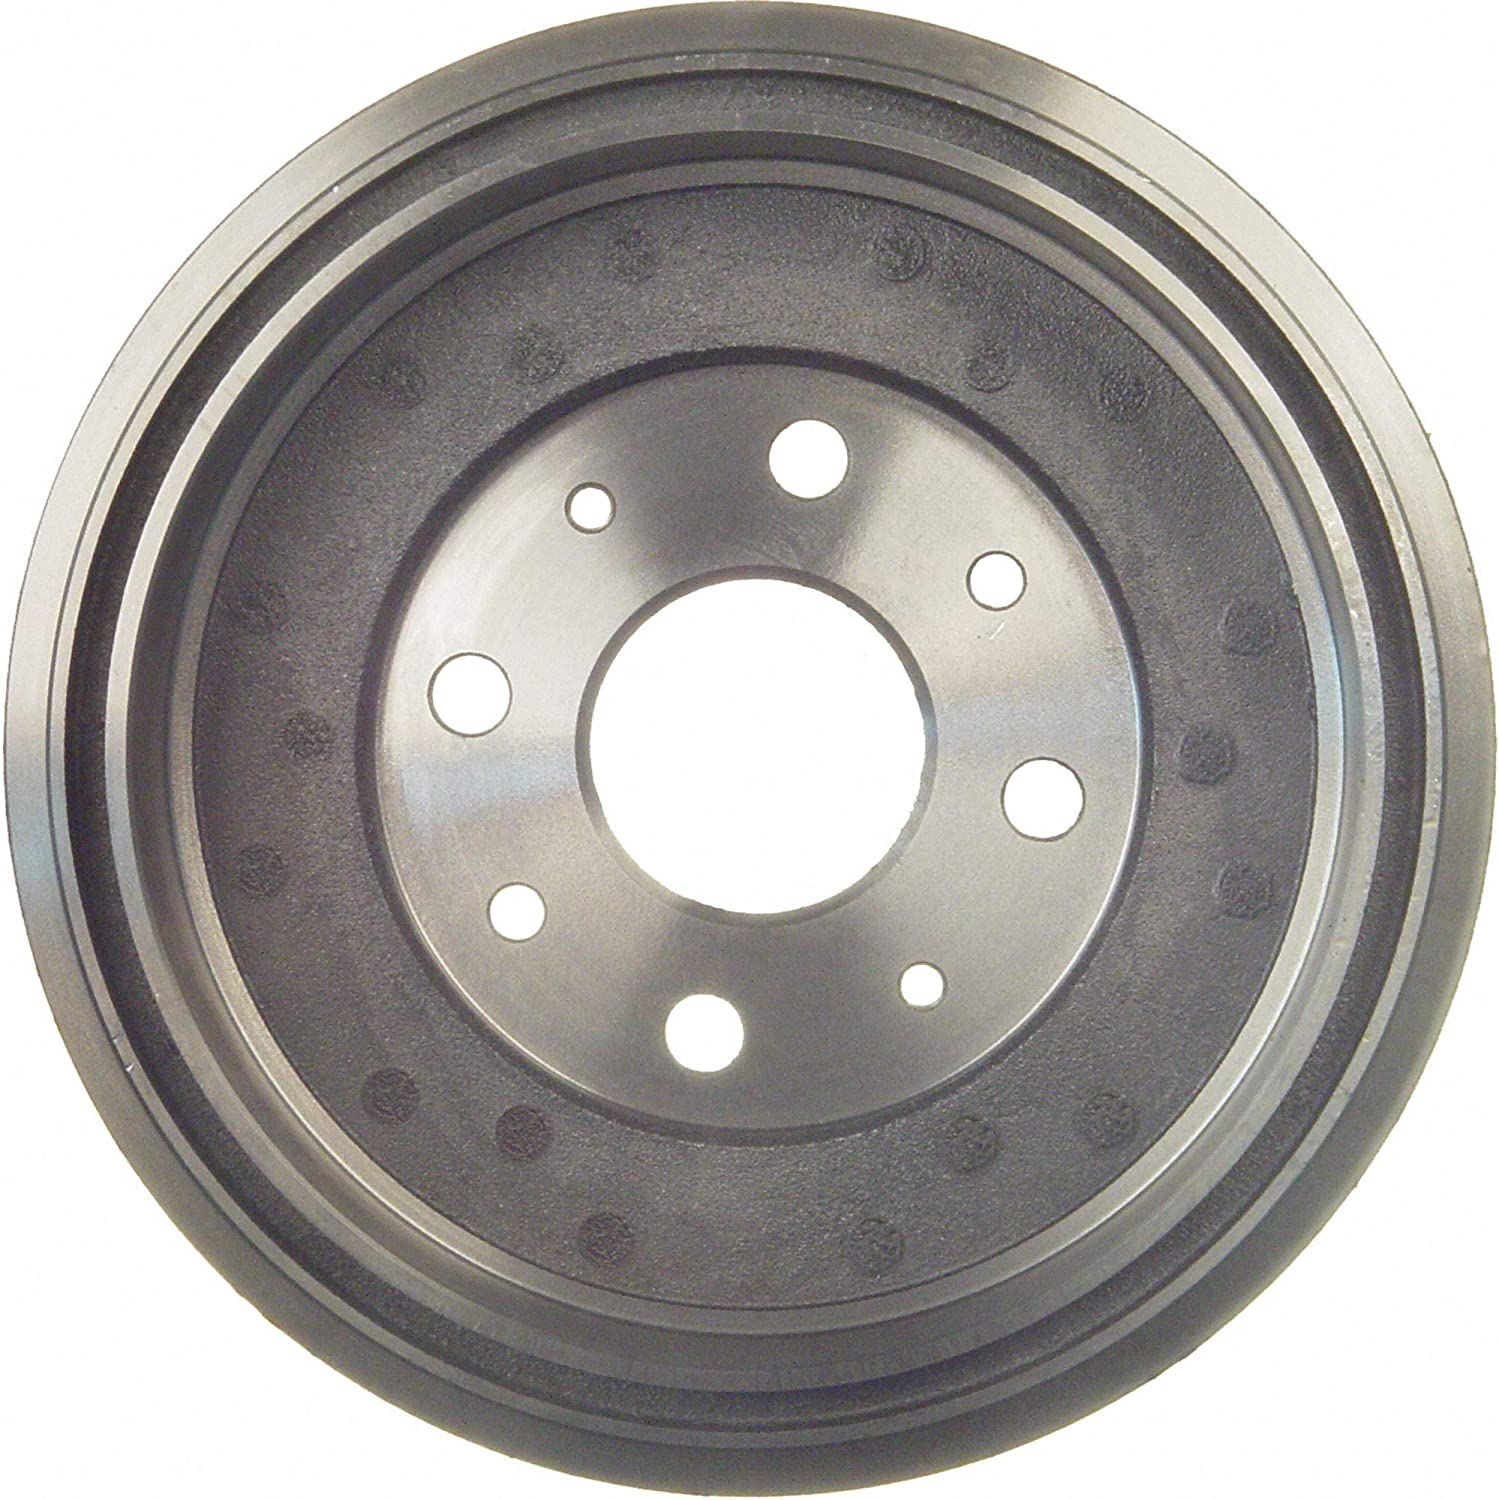 Rear Wagner BD125591 Premium Brake Drum